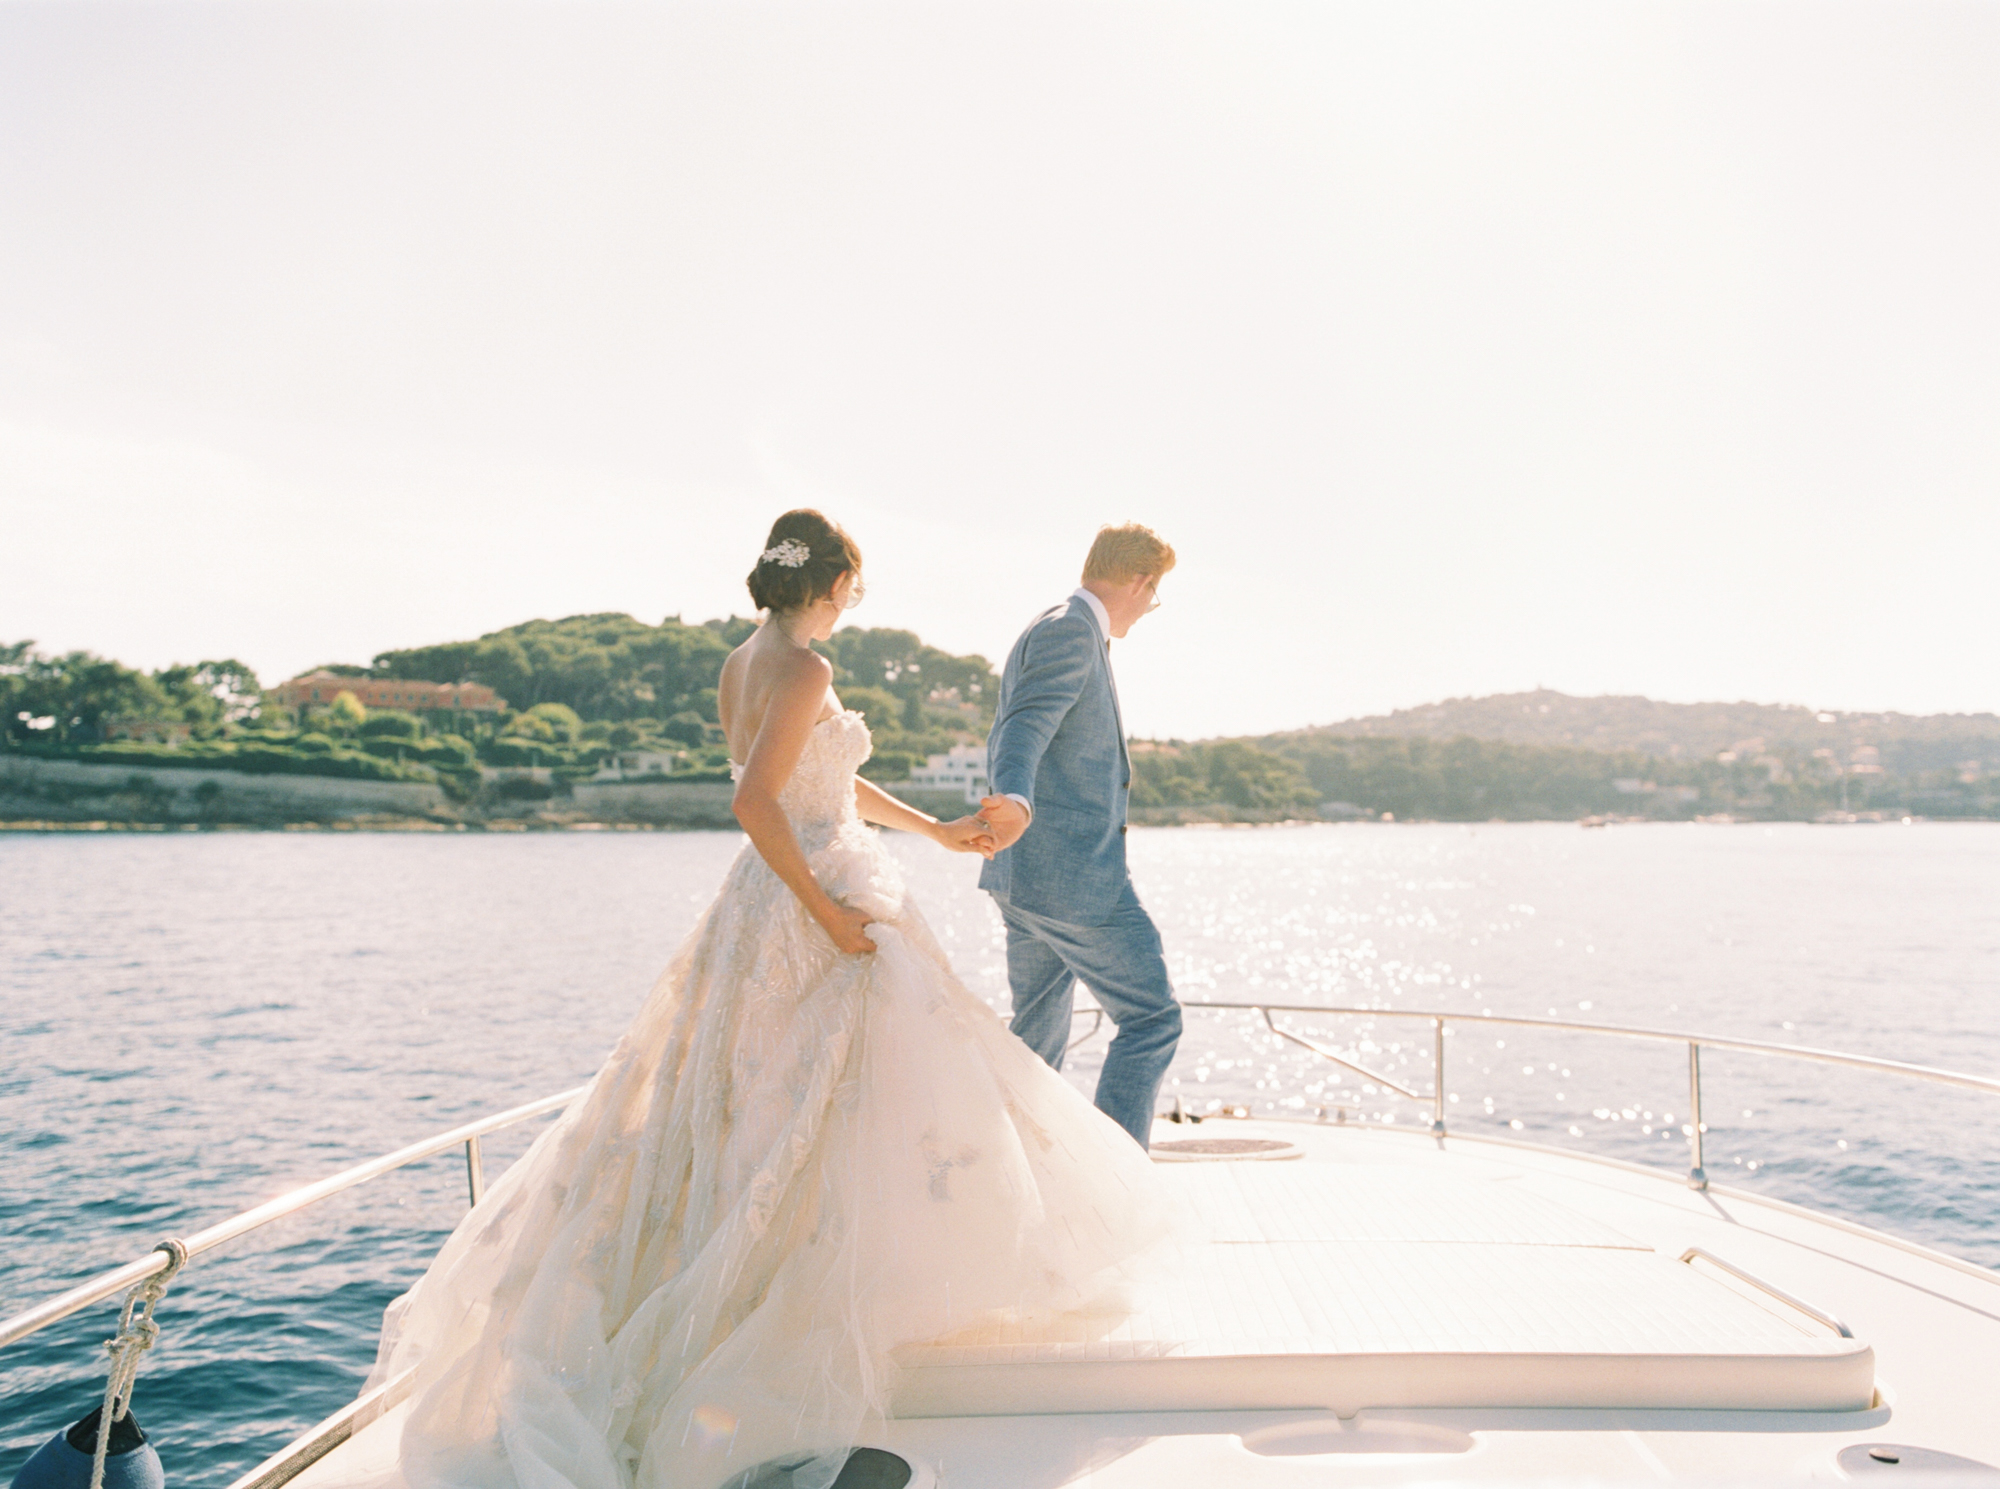 bride and groom standing on boat